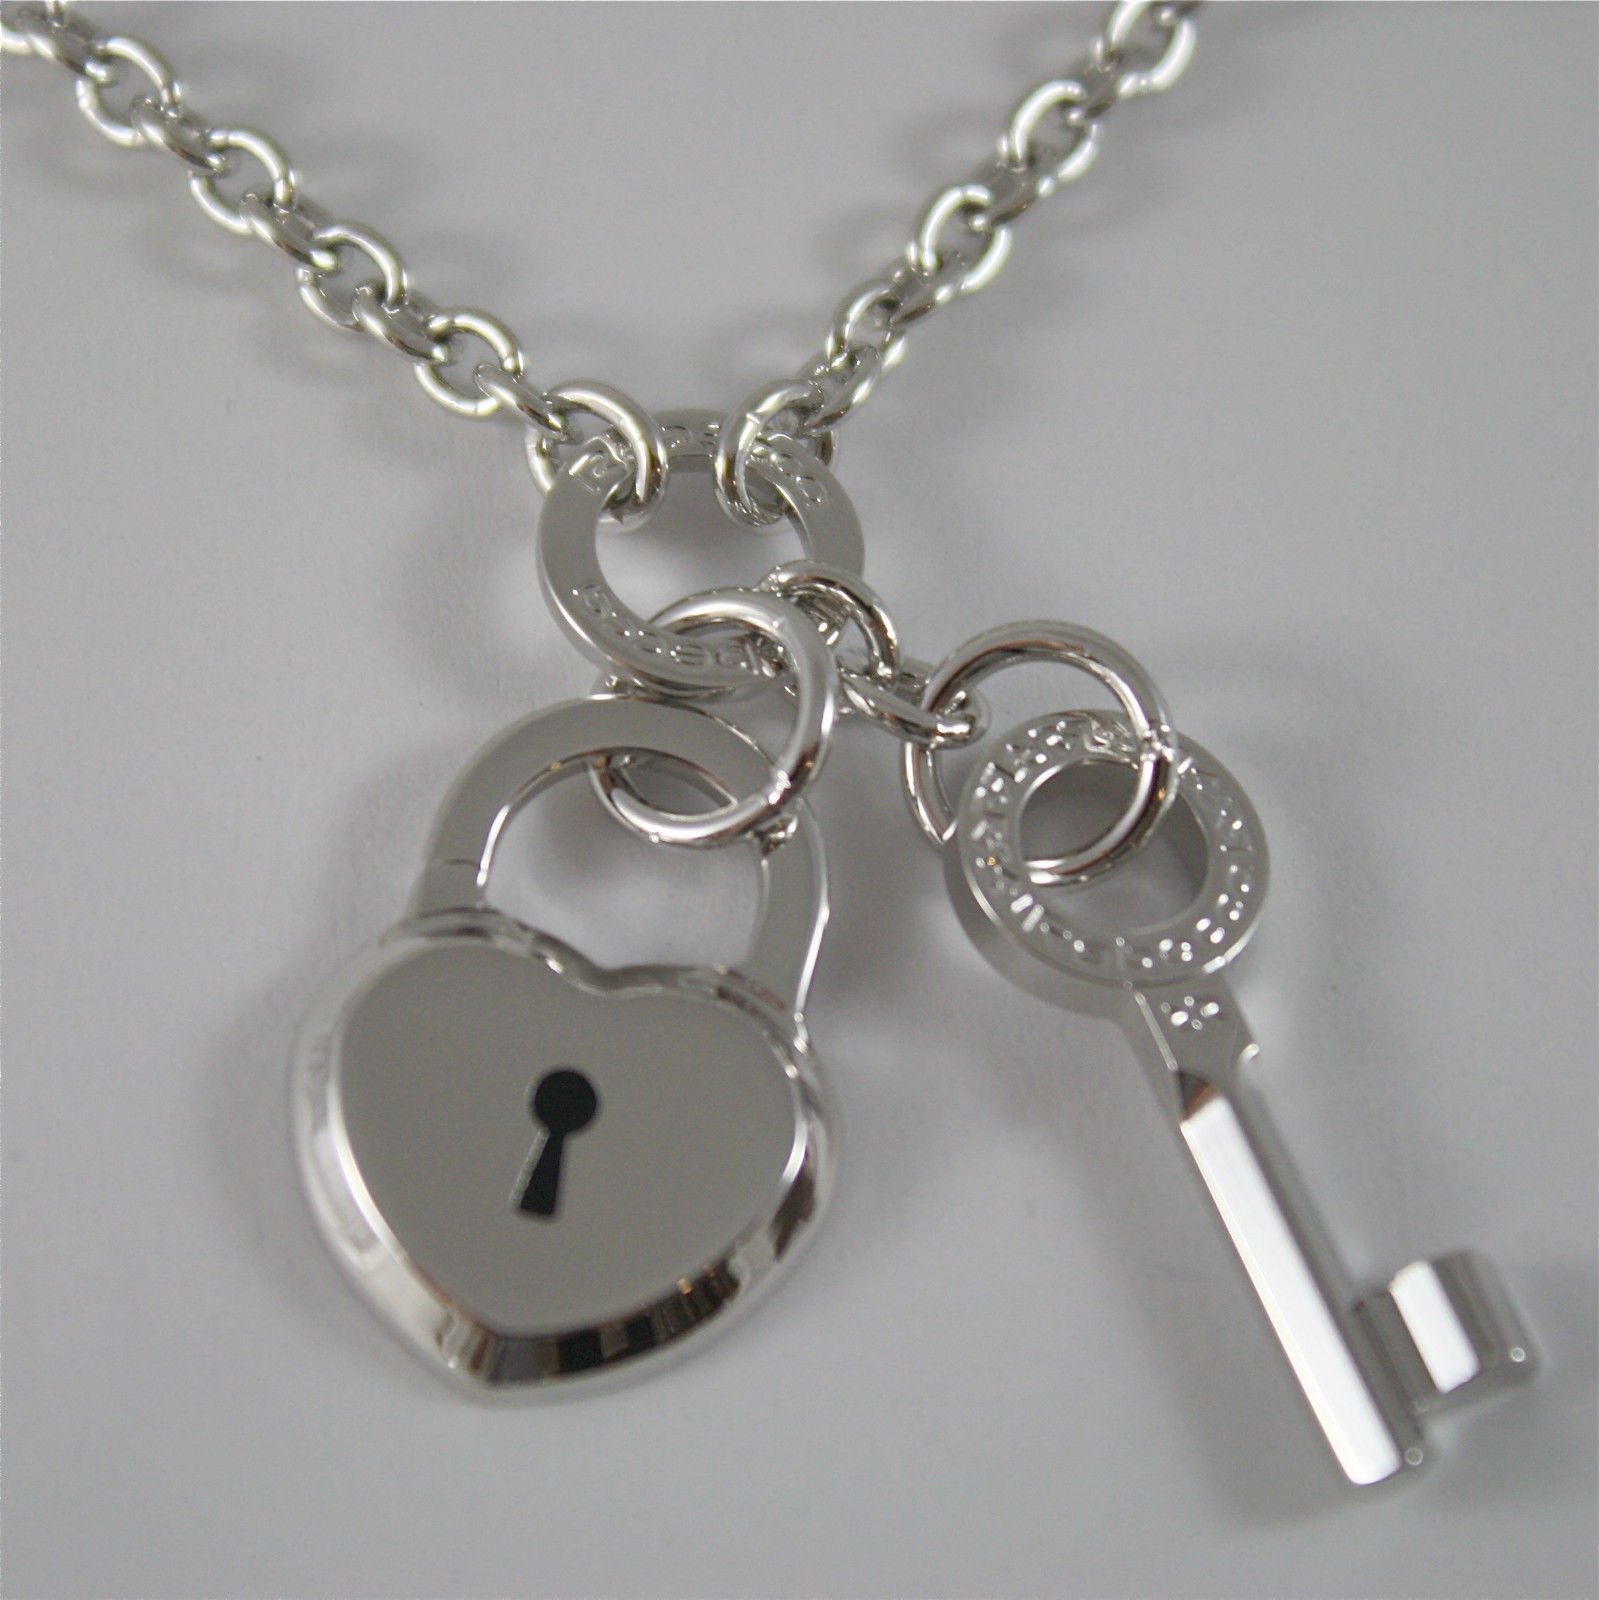 WHITE GOLD PLATED BRONZE REBECCA NECKLACE LOVE LOCK BLLKBB71 MADE IN ITALY 22.05